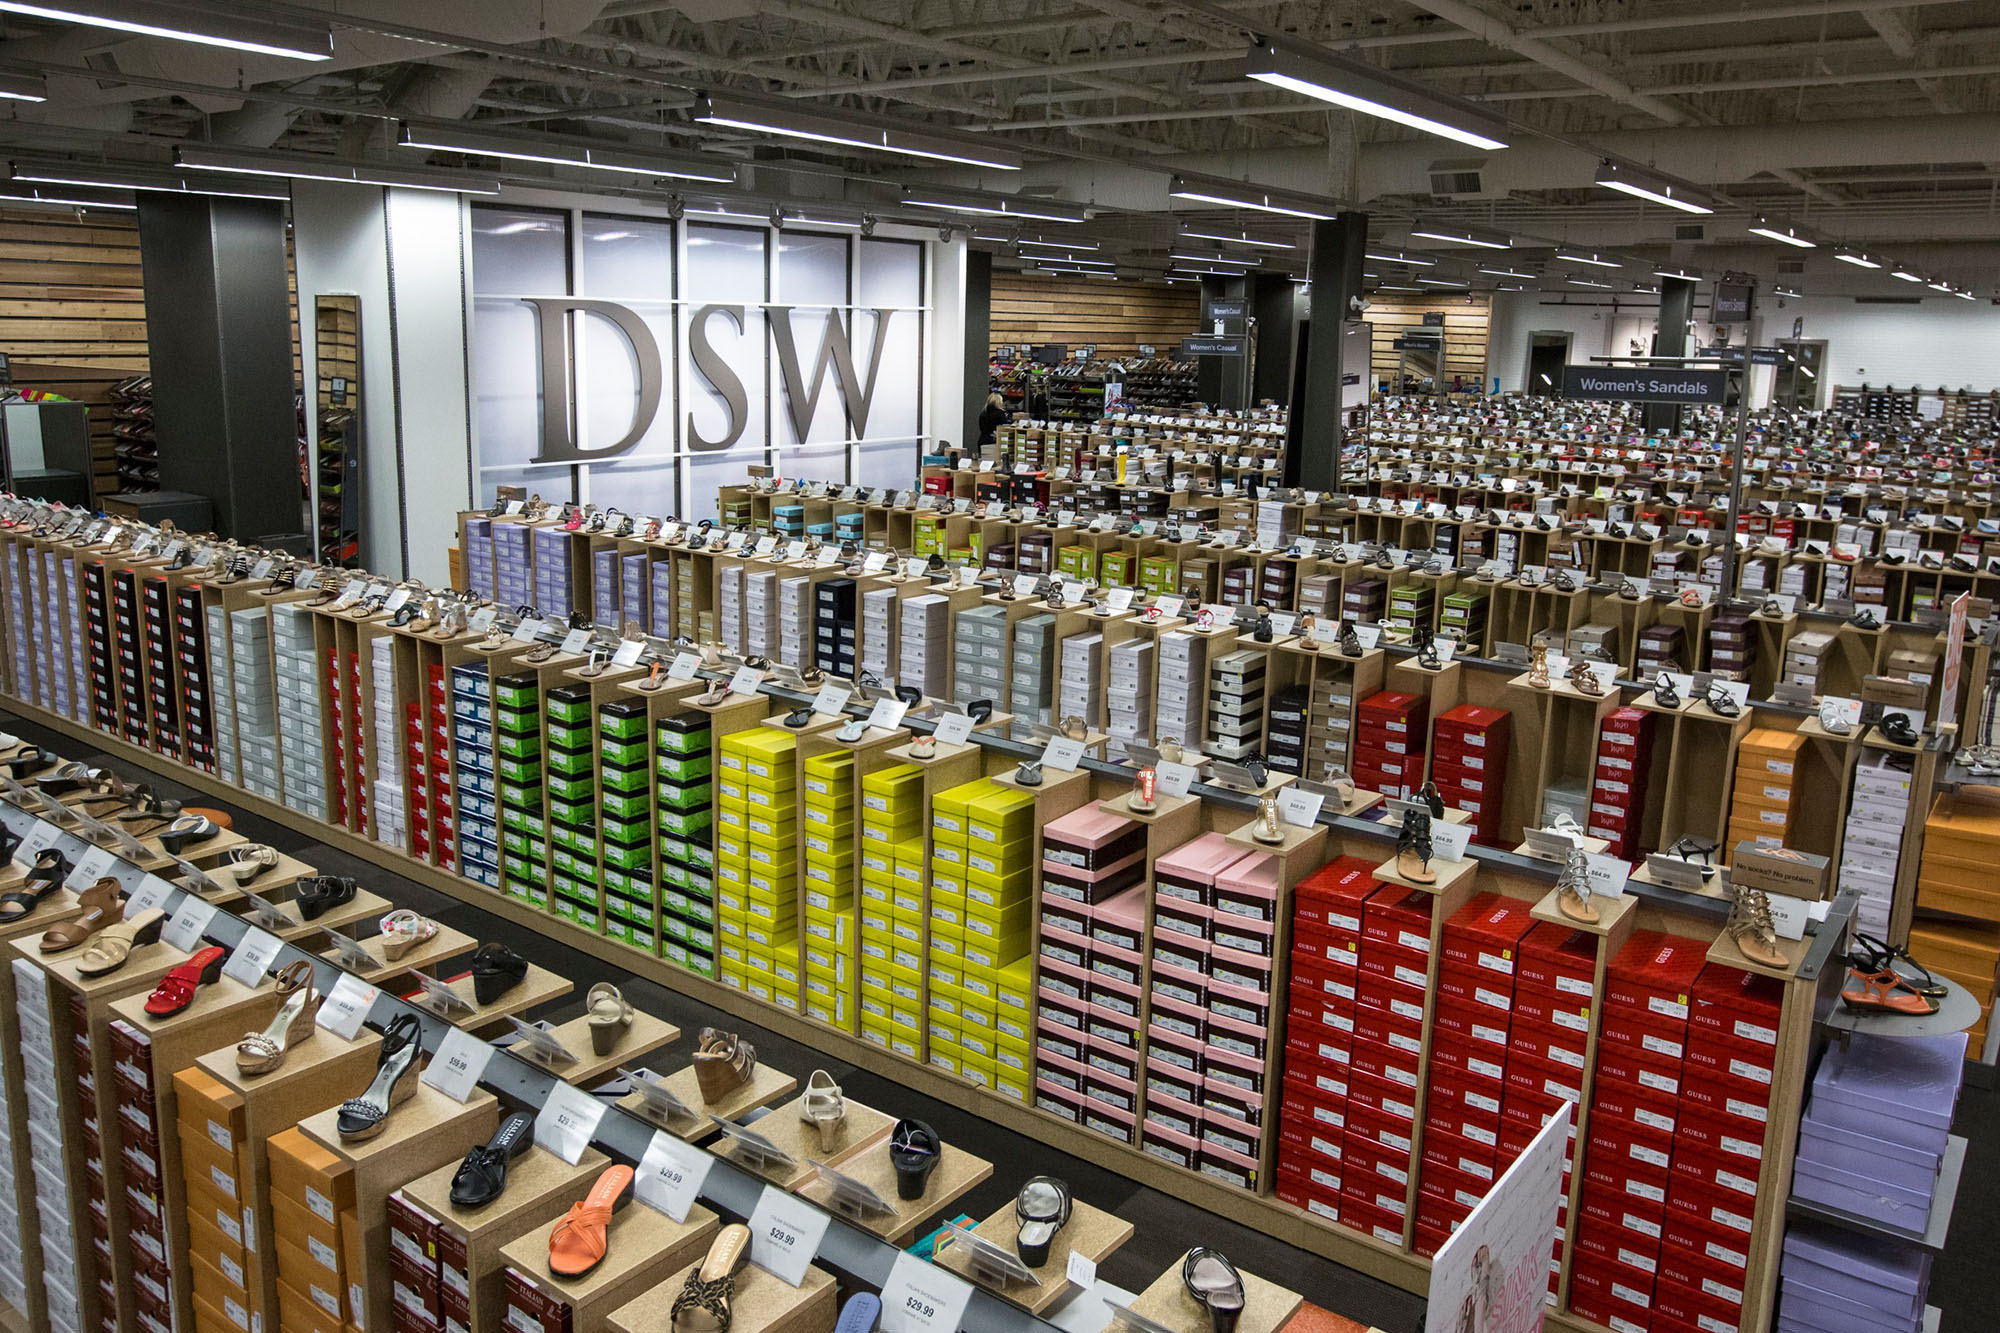 Warehouse Designer Dsw To Open At Bayfair On October 1 San Leandro Next